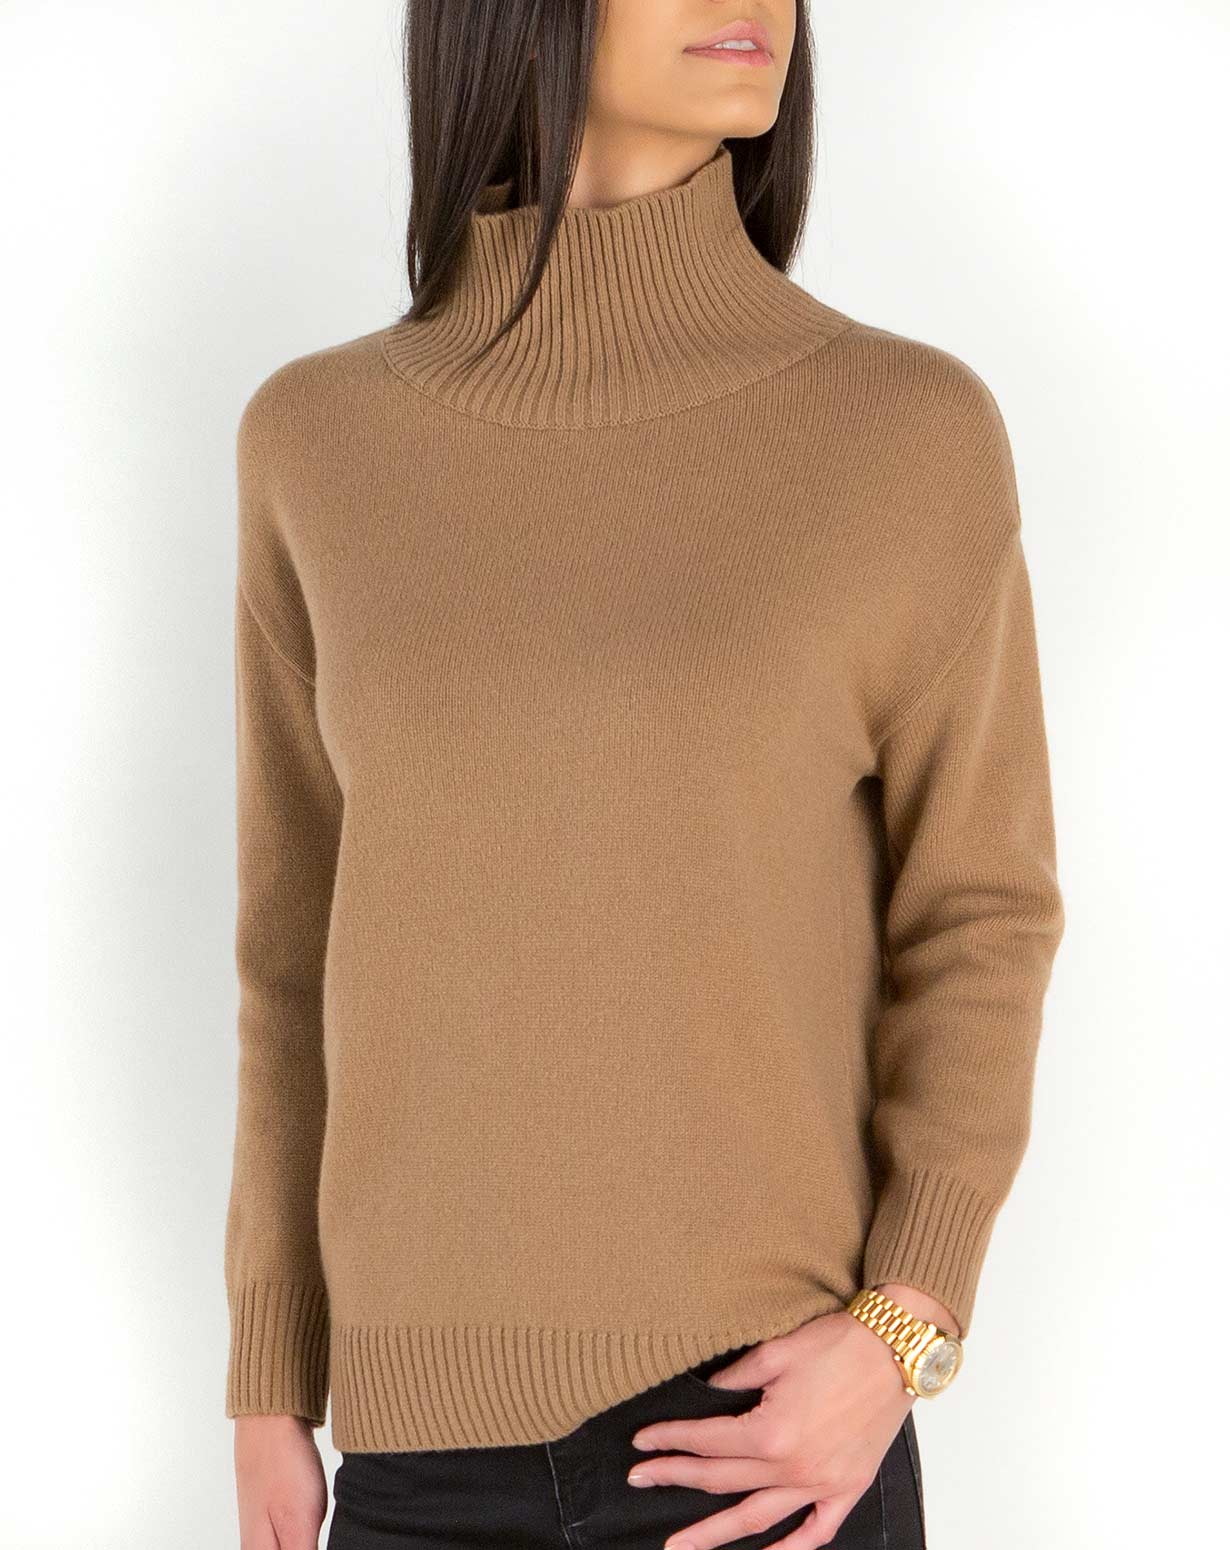 Lambswool & Cashmere Women's Funnel Neck Sweater